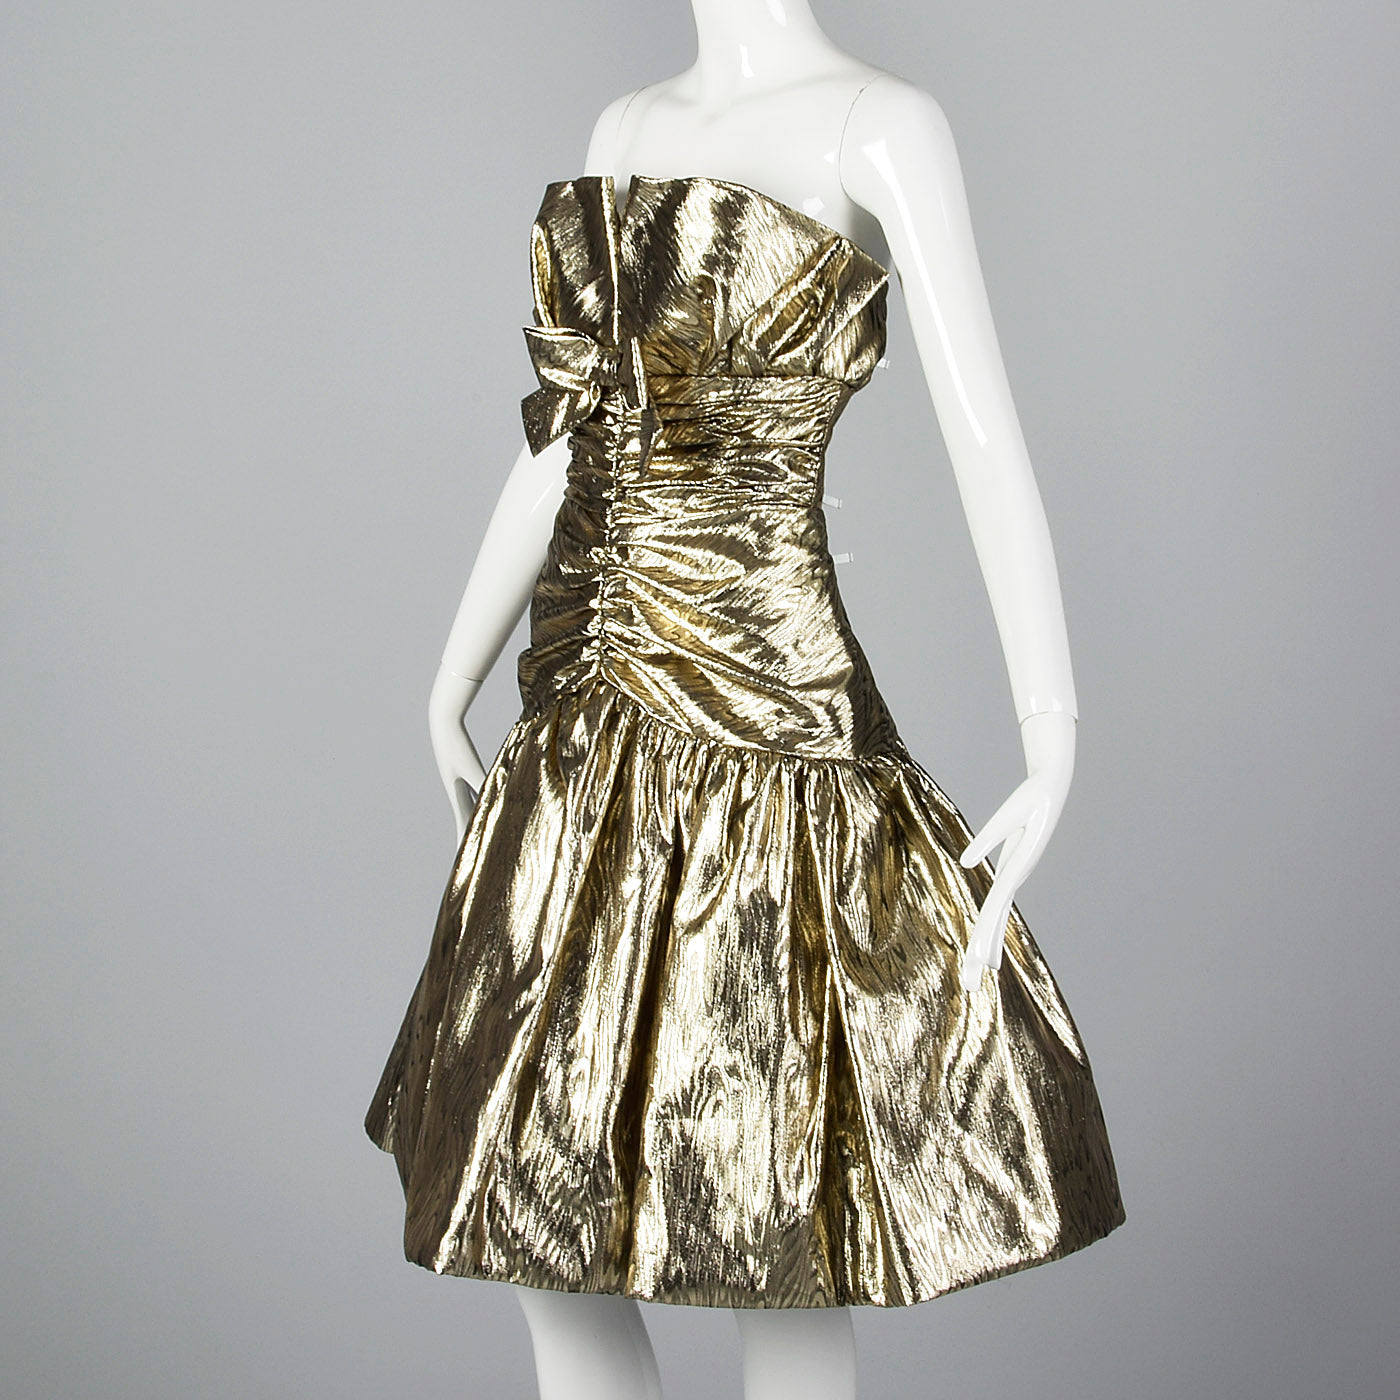 1980s Victor Costa Metallic Gold Strapless Party Dress